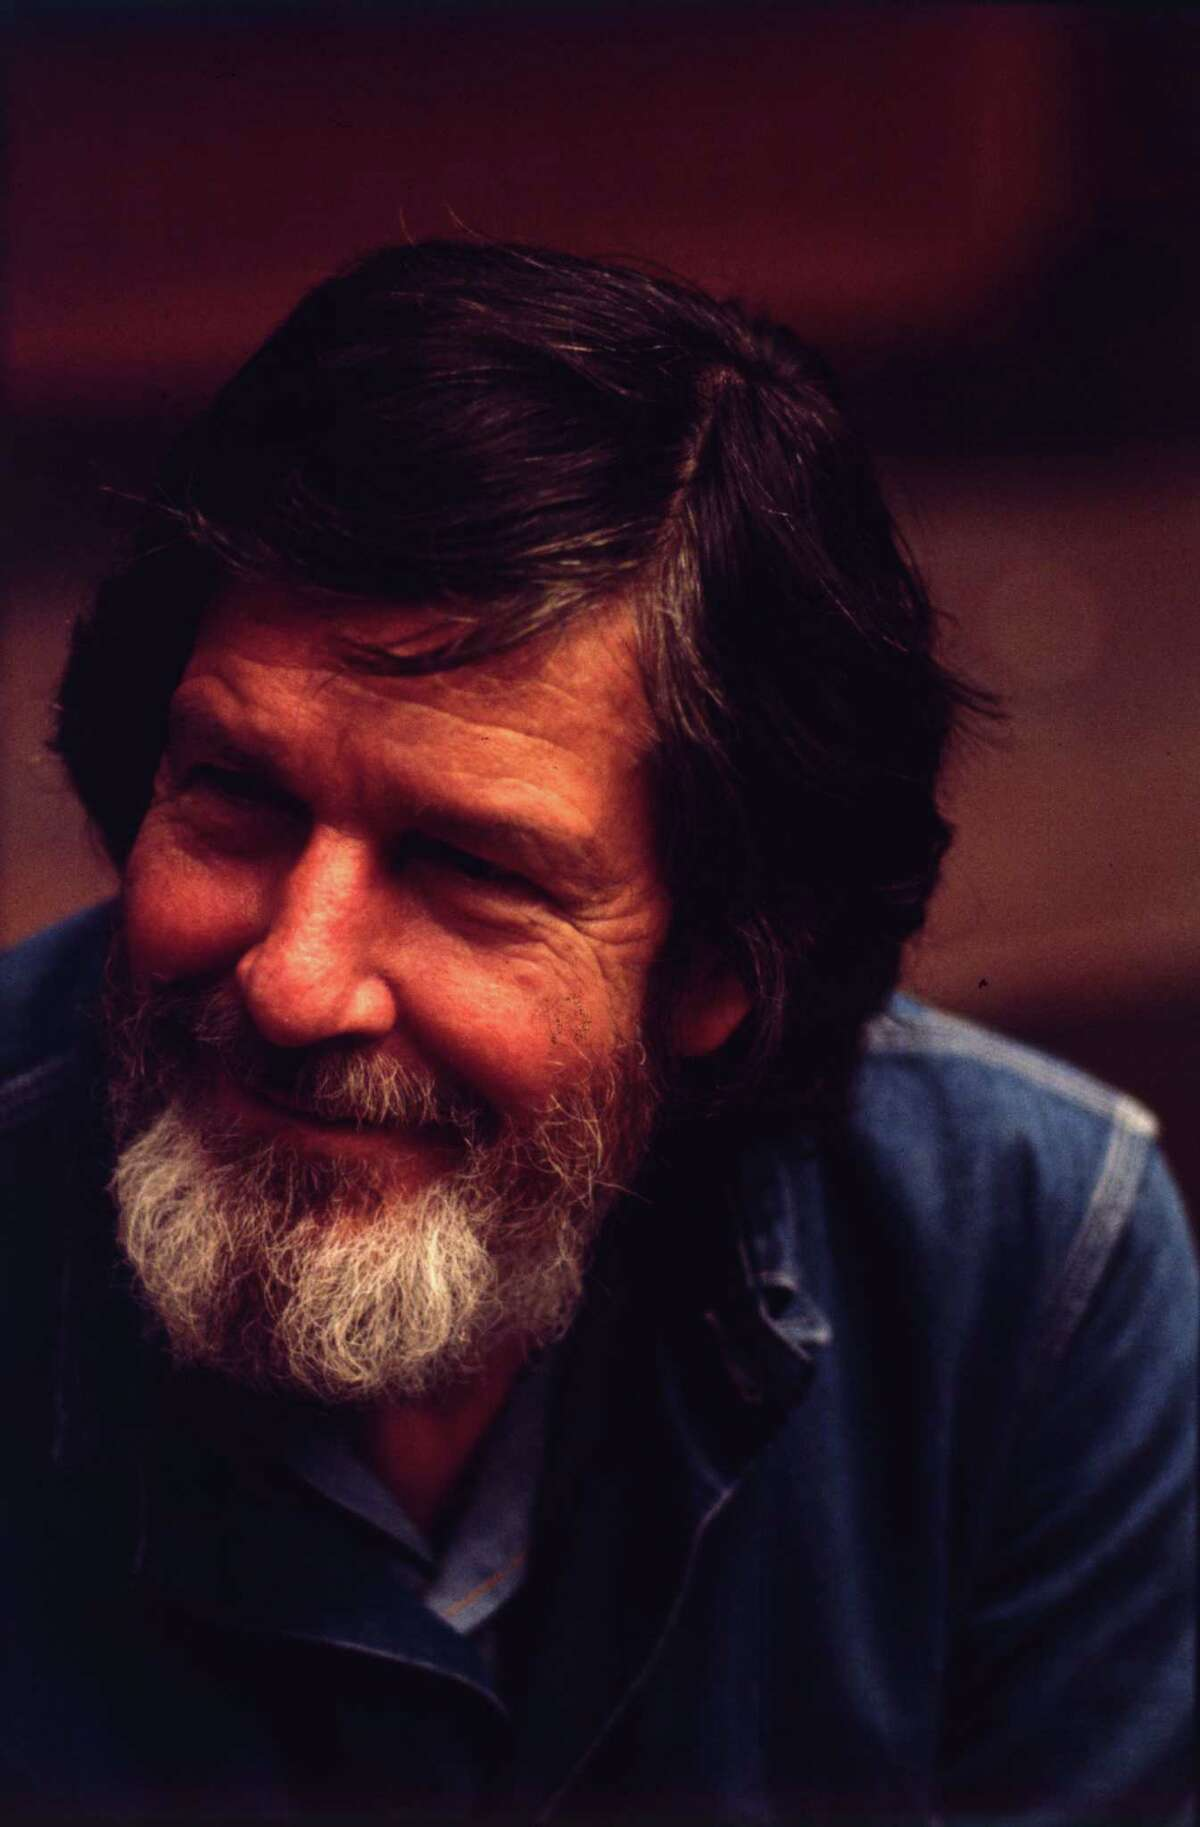 1972: John Cage (1912 - 1992) composer and writer about music. A pupil of Schoenberg. Considered an 'ultra' modernist who also used silence as part of a composition. (Photo by Erich Auerbach/Getty Images)